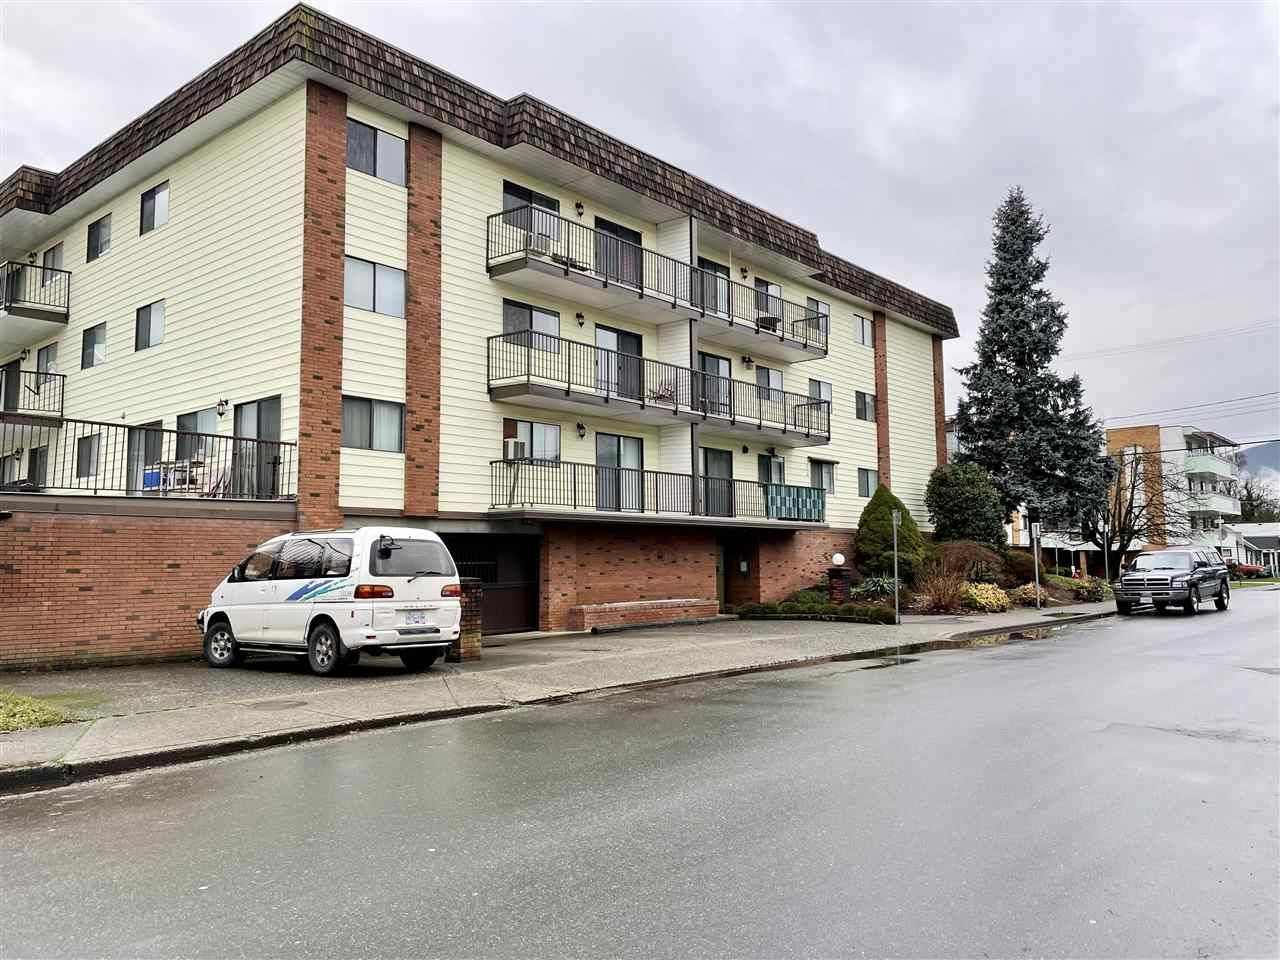 """Main Photo: 108 9417 NOWELL Street in Chilliwack: Chilliwack N Yale-Well Condo for sale in """"THE AMBASSADOR"""" : MLS®# R2543787"""